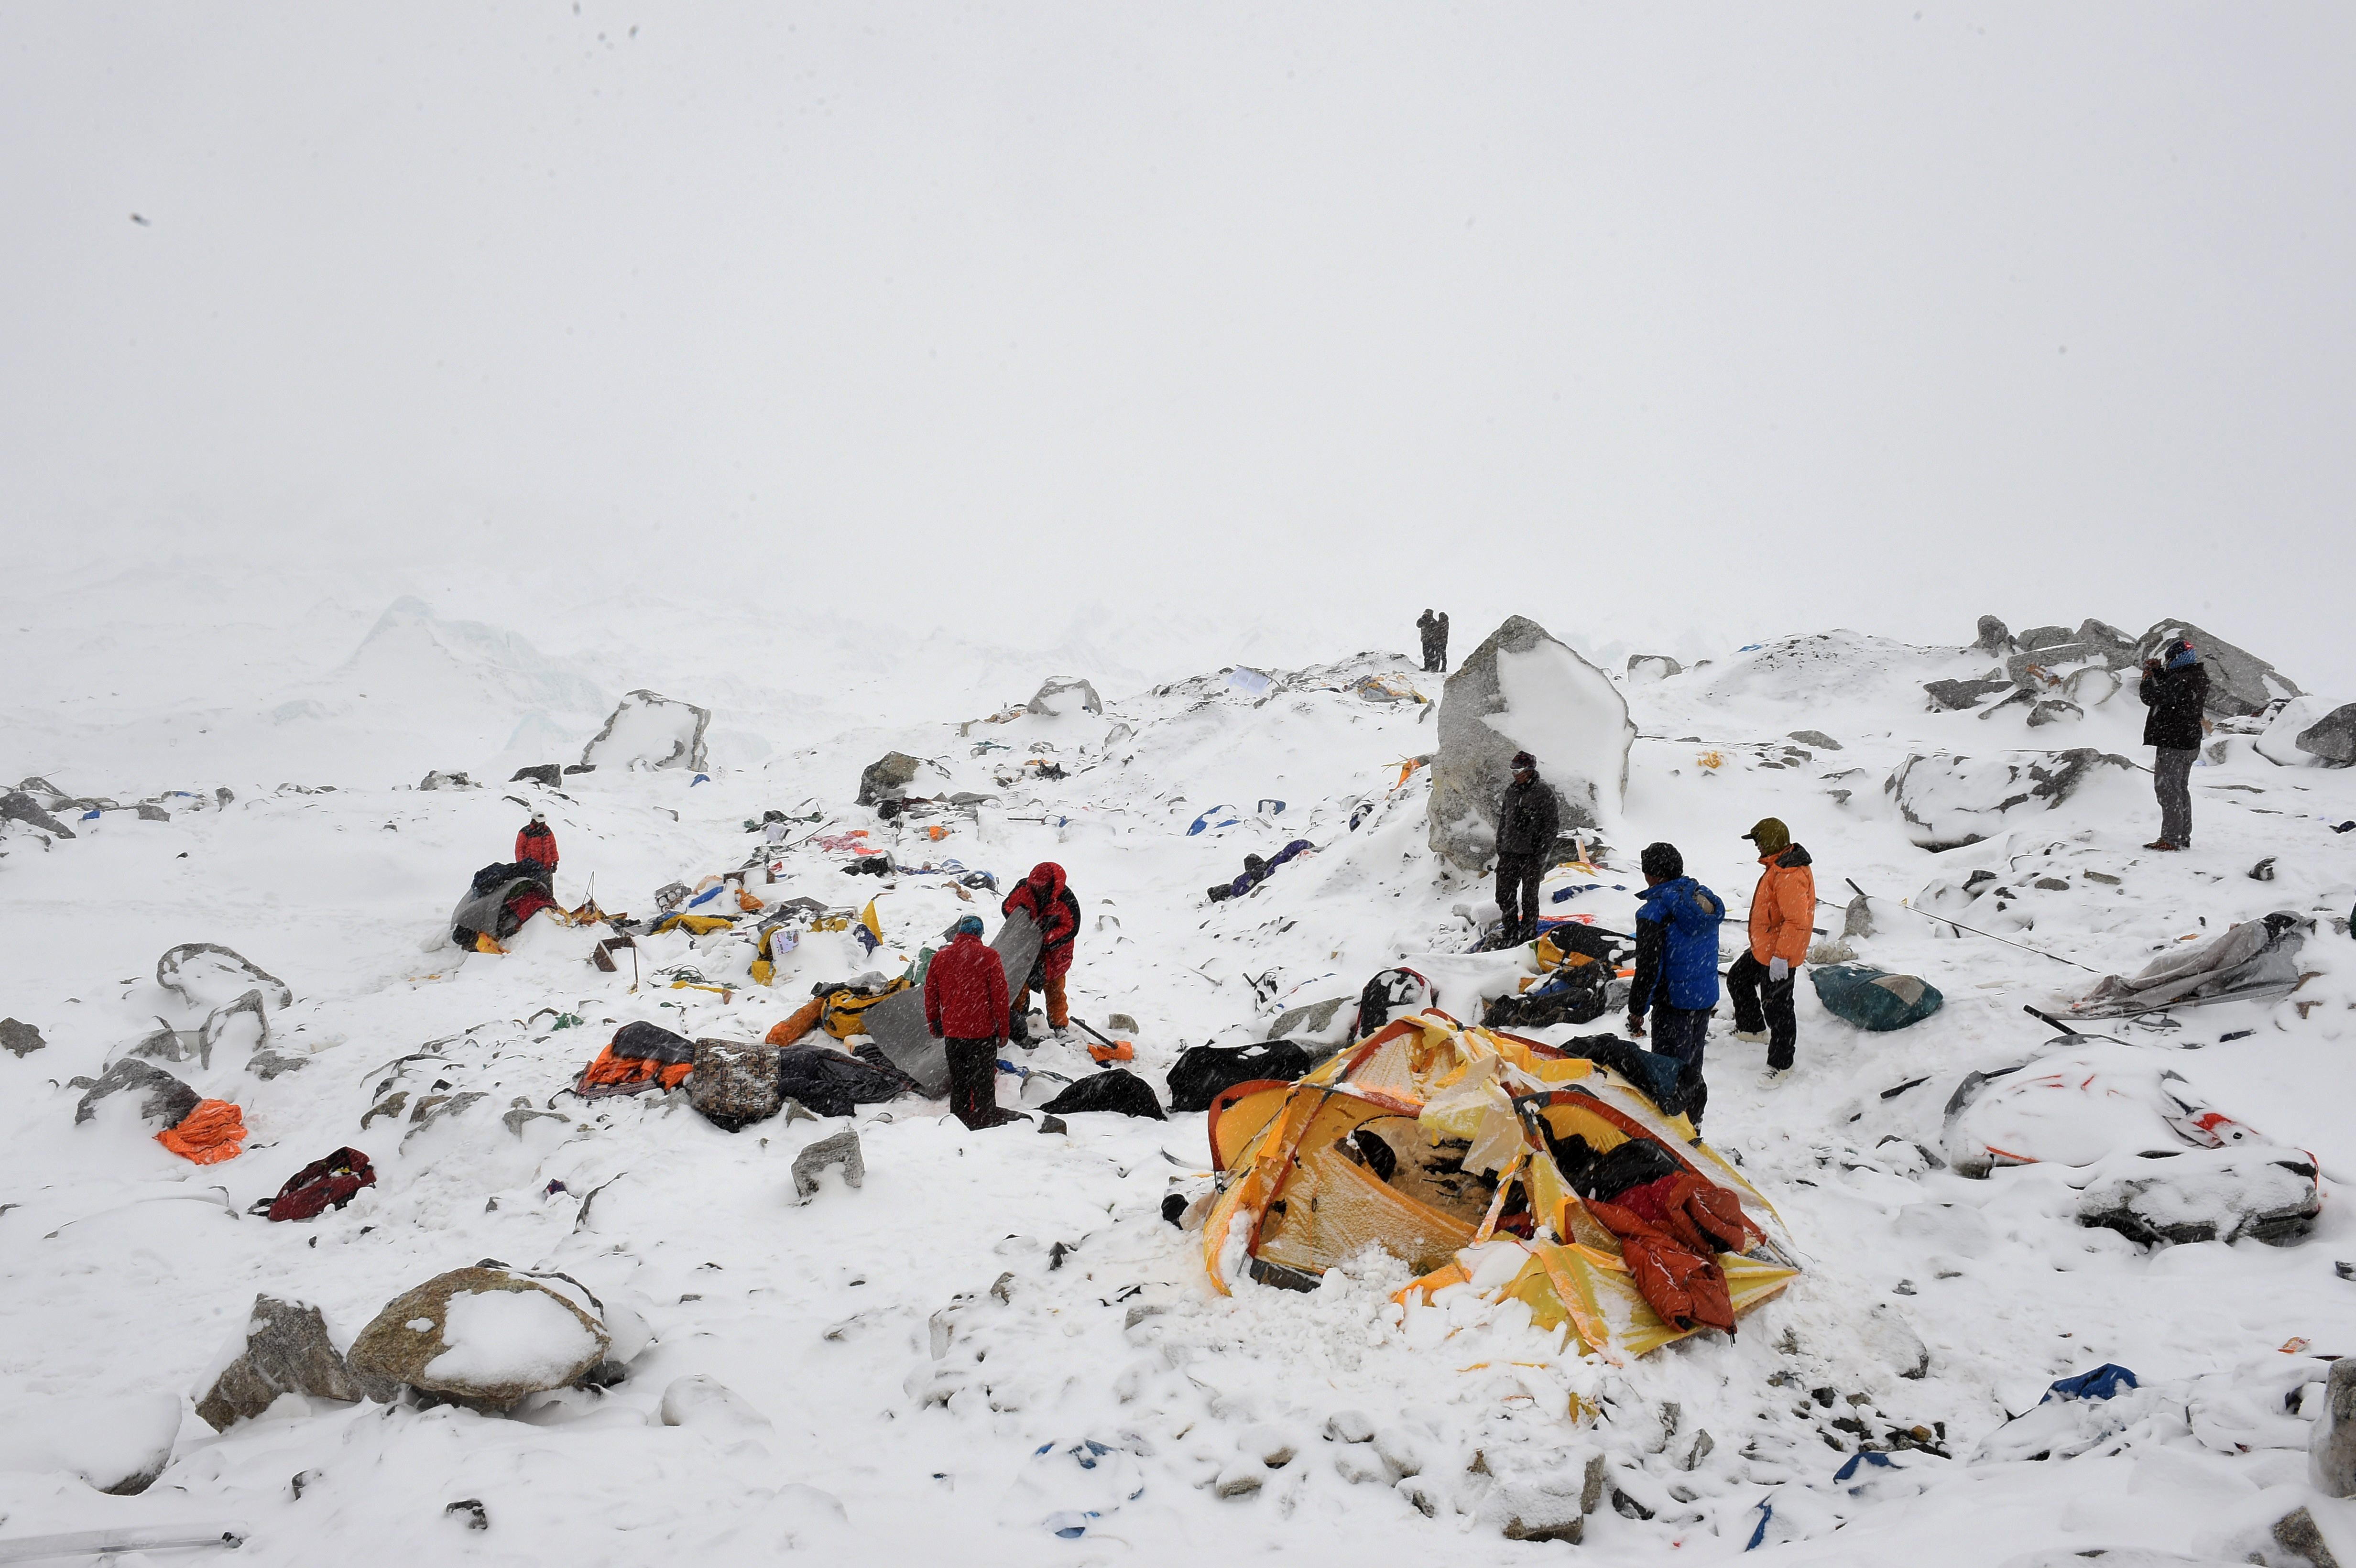 Rescuers search for survivors after an avalanche at the Mount Everest base camp. Filmmaker Tom Taplin and two other Americans were among at least 17 killed there following an earthquake in Nepal. (Getty)